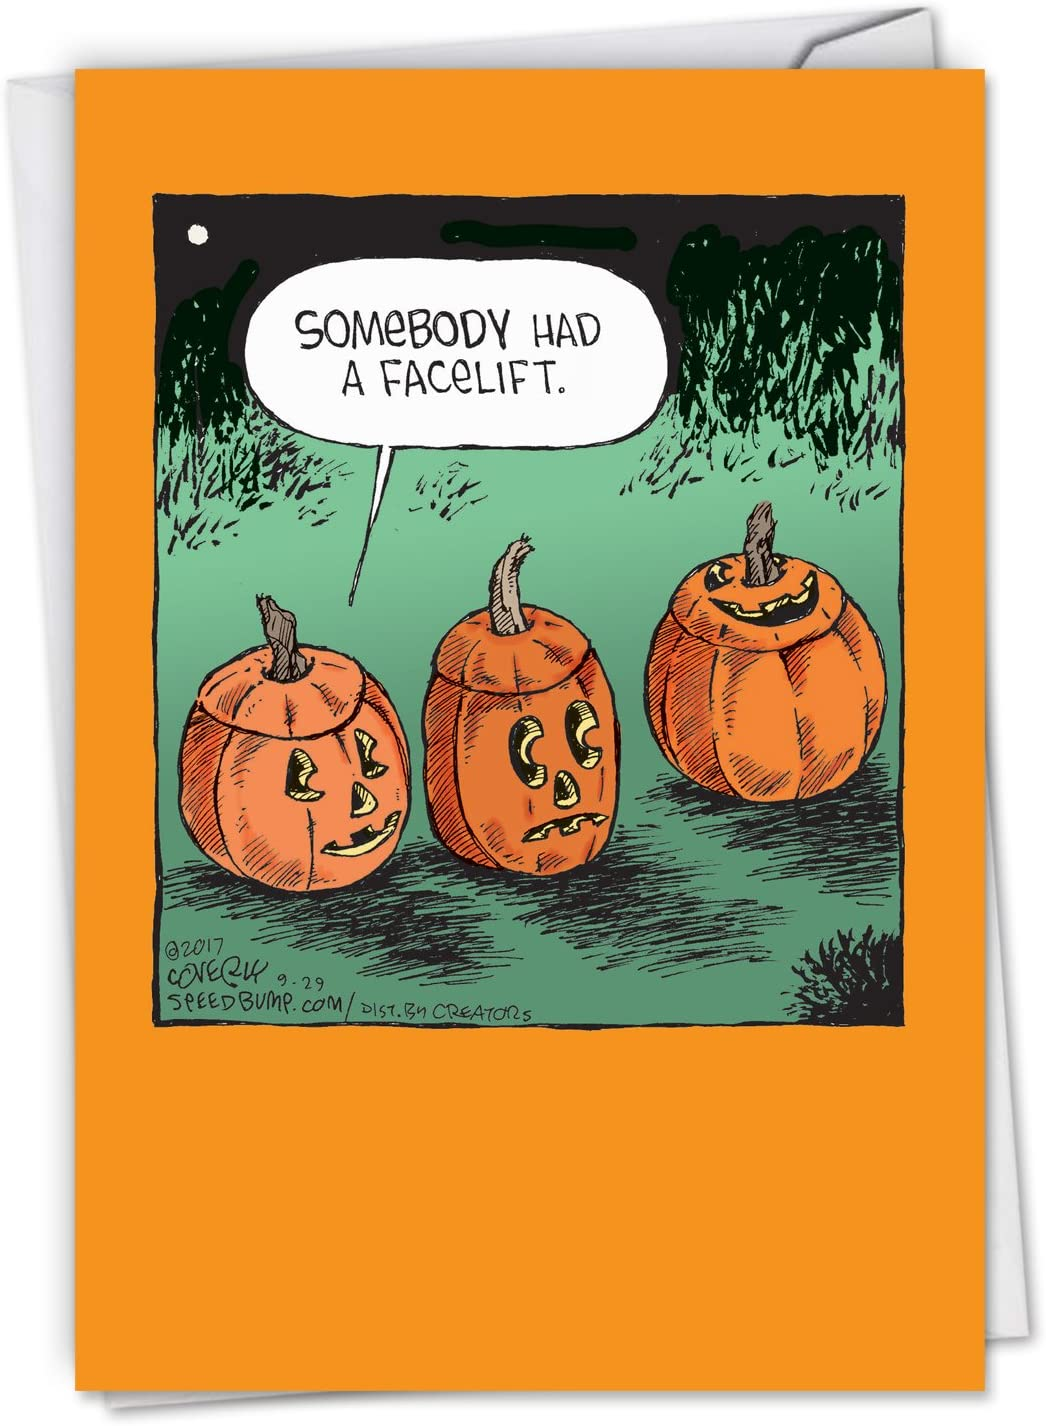 Amazon Com Nobleworks Happy Halloween Card Funny Fun Cartoon Humor Spooky Greeting Notecard With Envelope Pumpkin Facelift C6235hwg Office Products